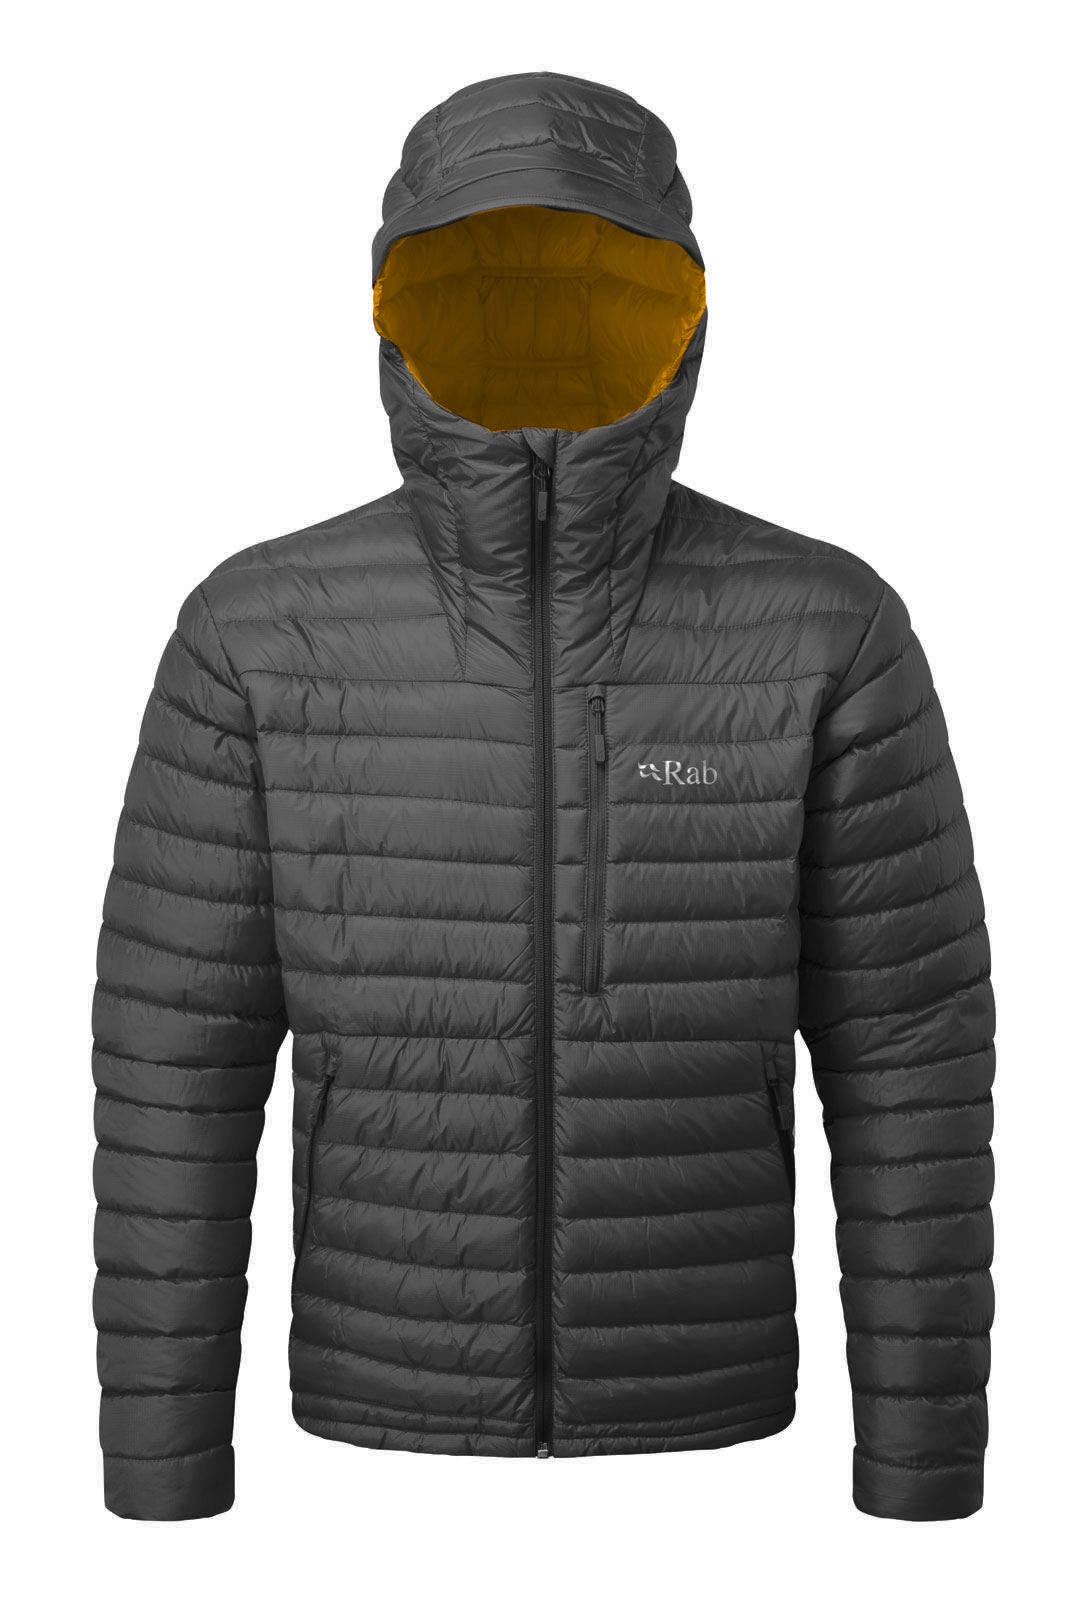 50dac90f Mens Clothing — NORTH WEST OUTDOORS